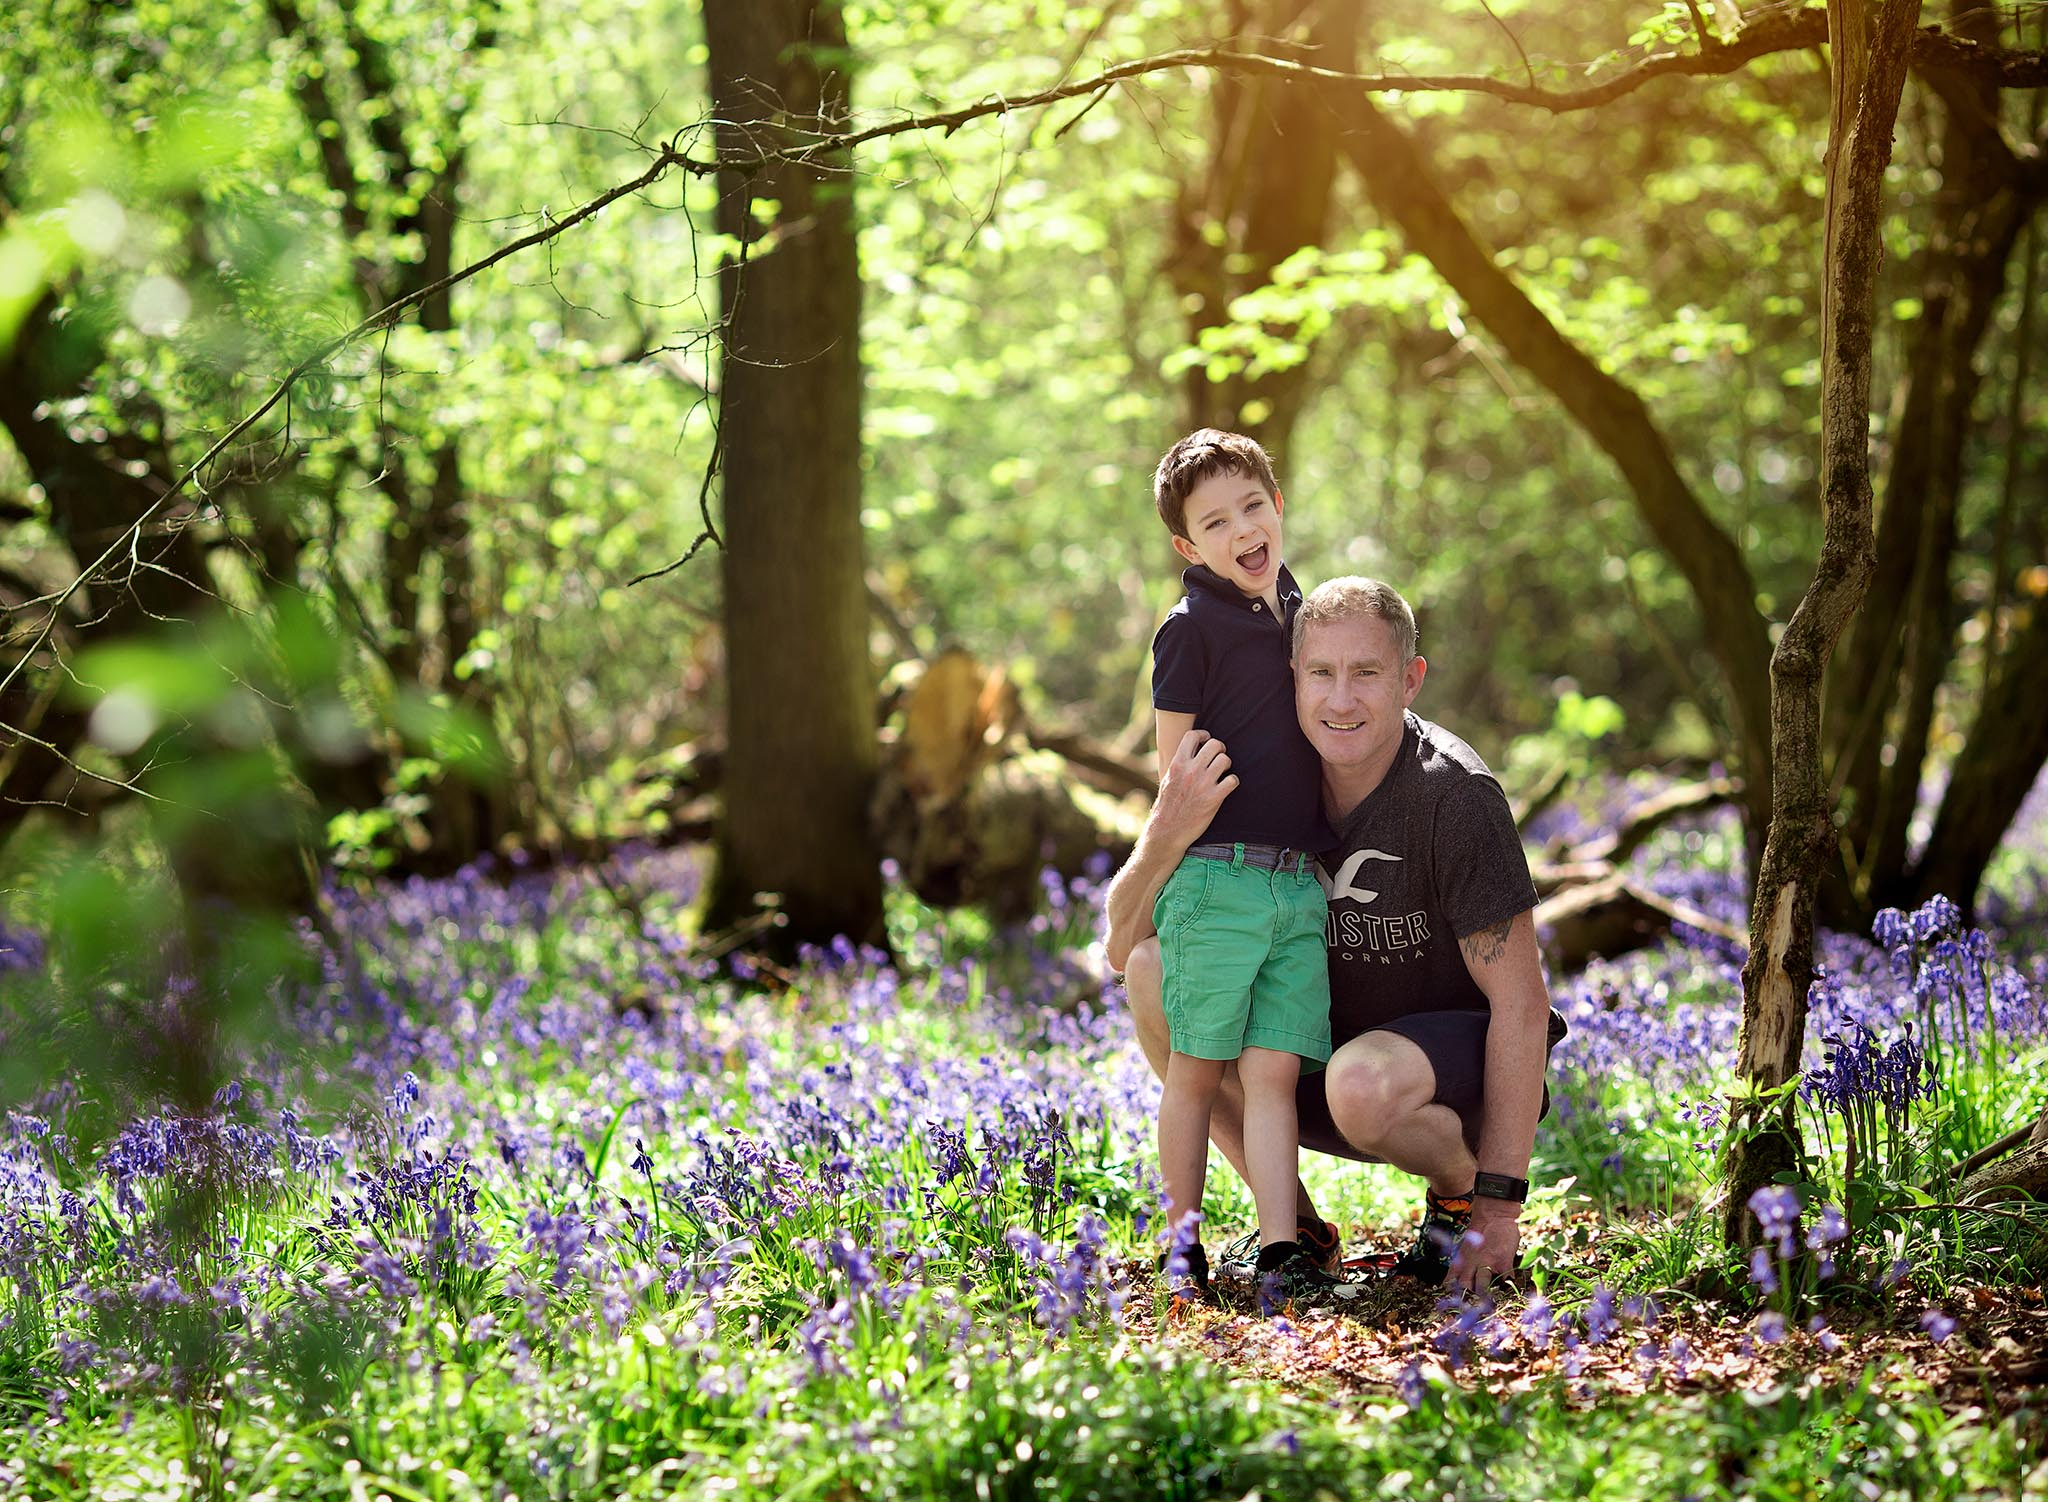 Outdoor bluebell photography session